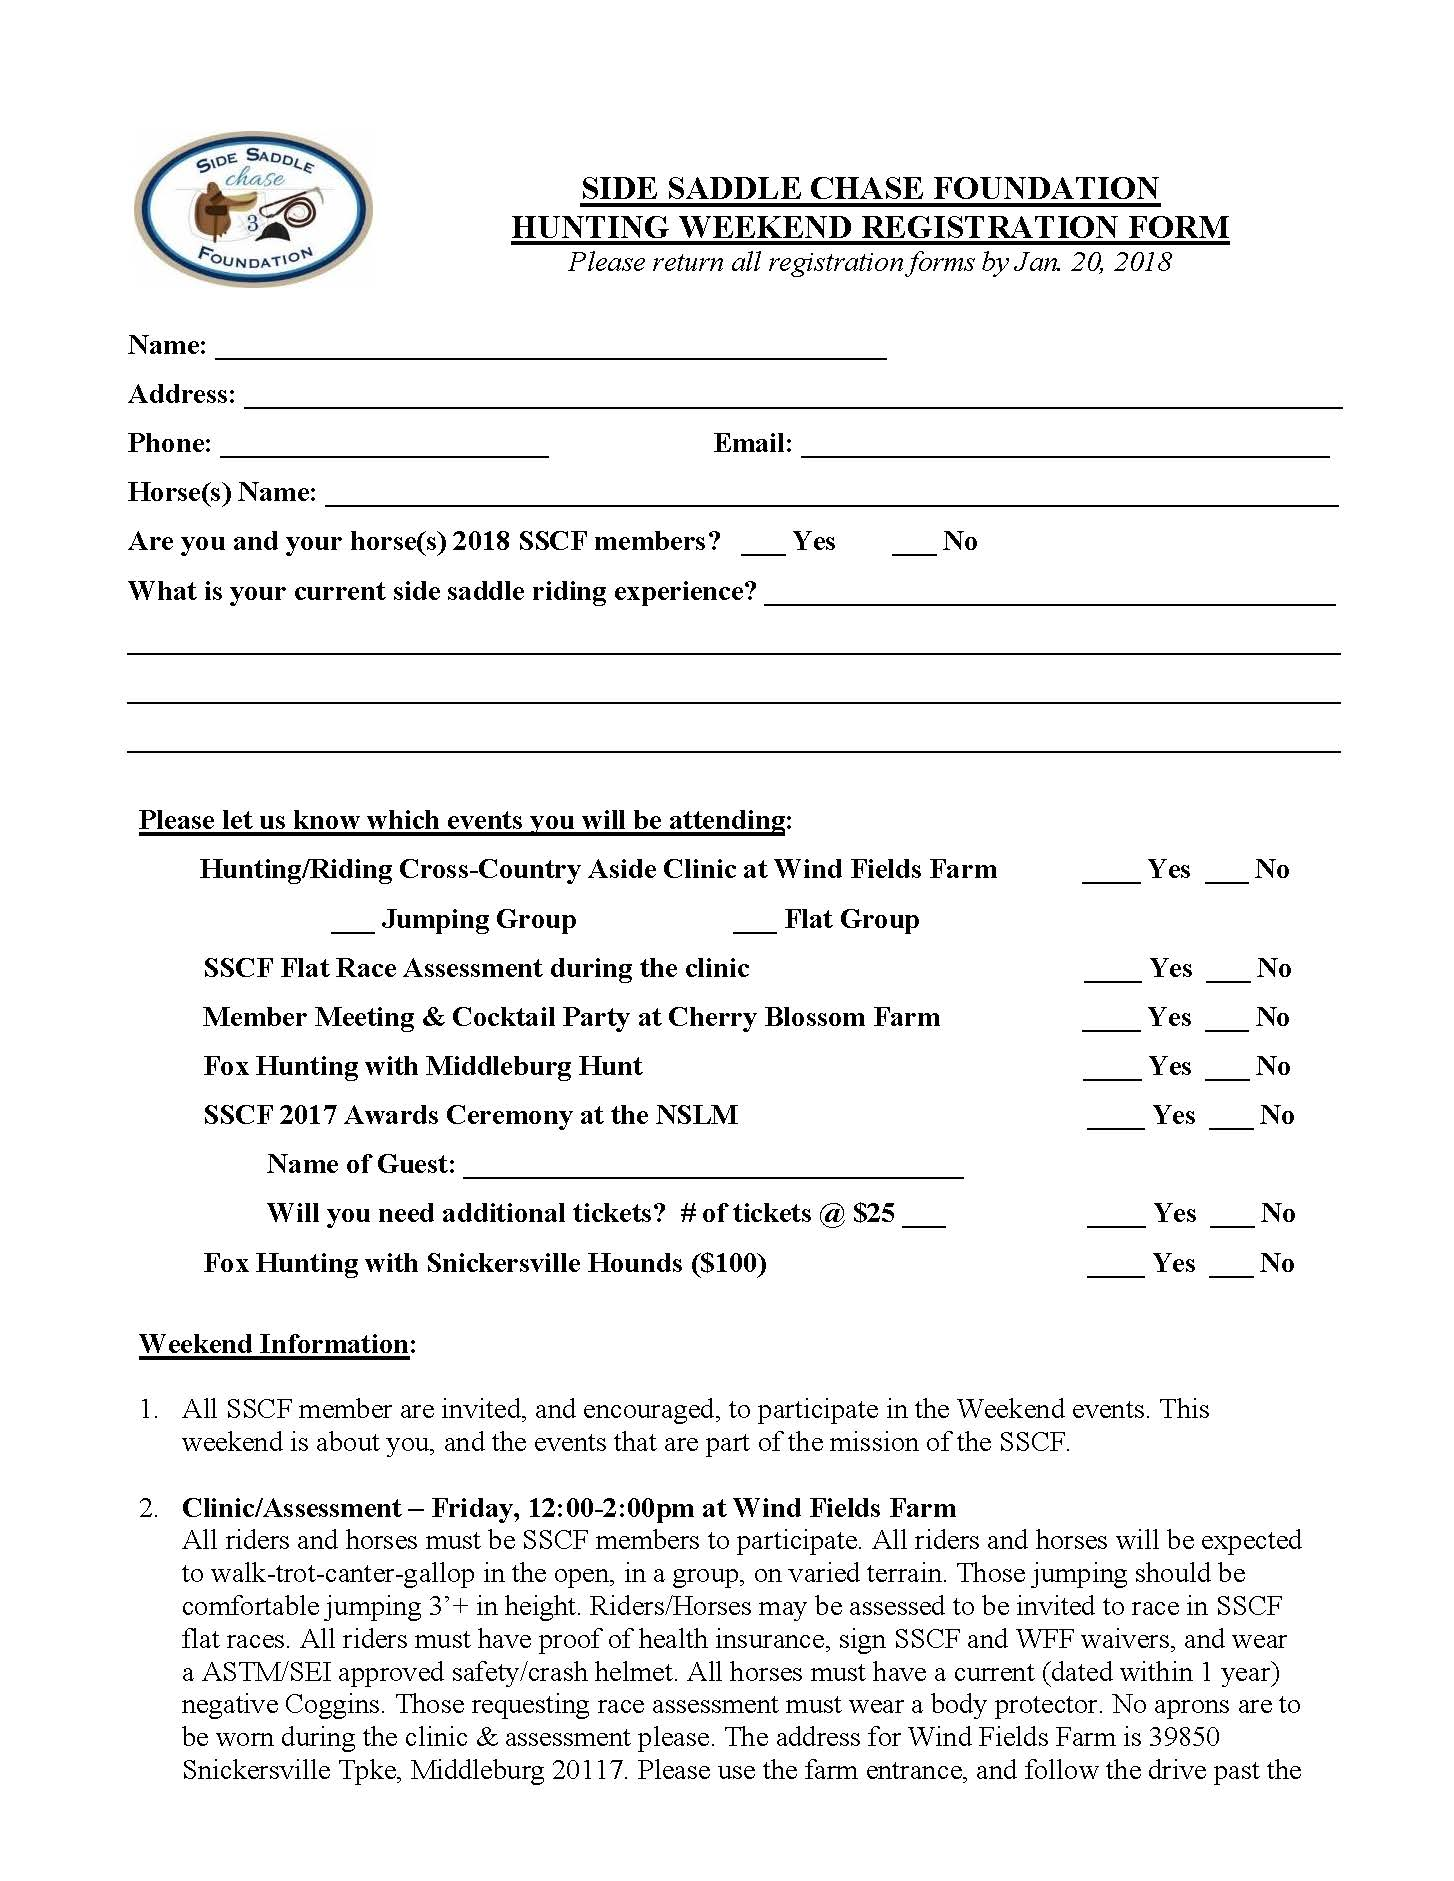 2018 SSCF Hunting Weekend Award Reception Registration Form_final_Page_02.jpg